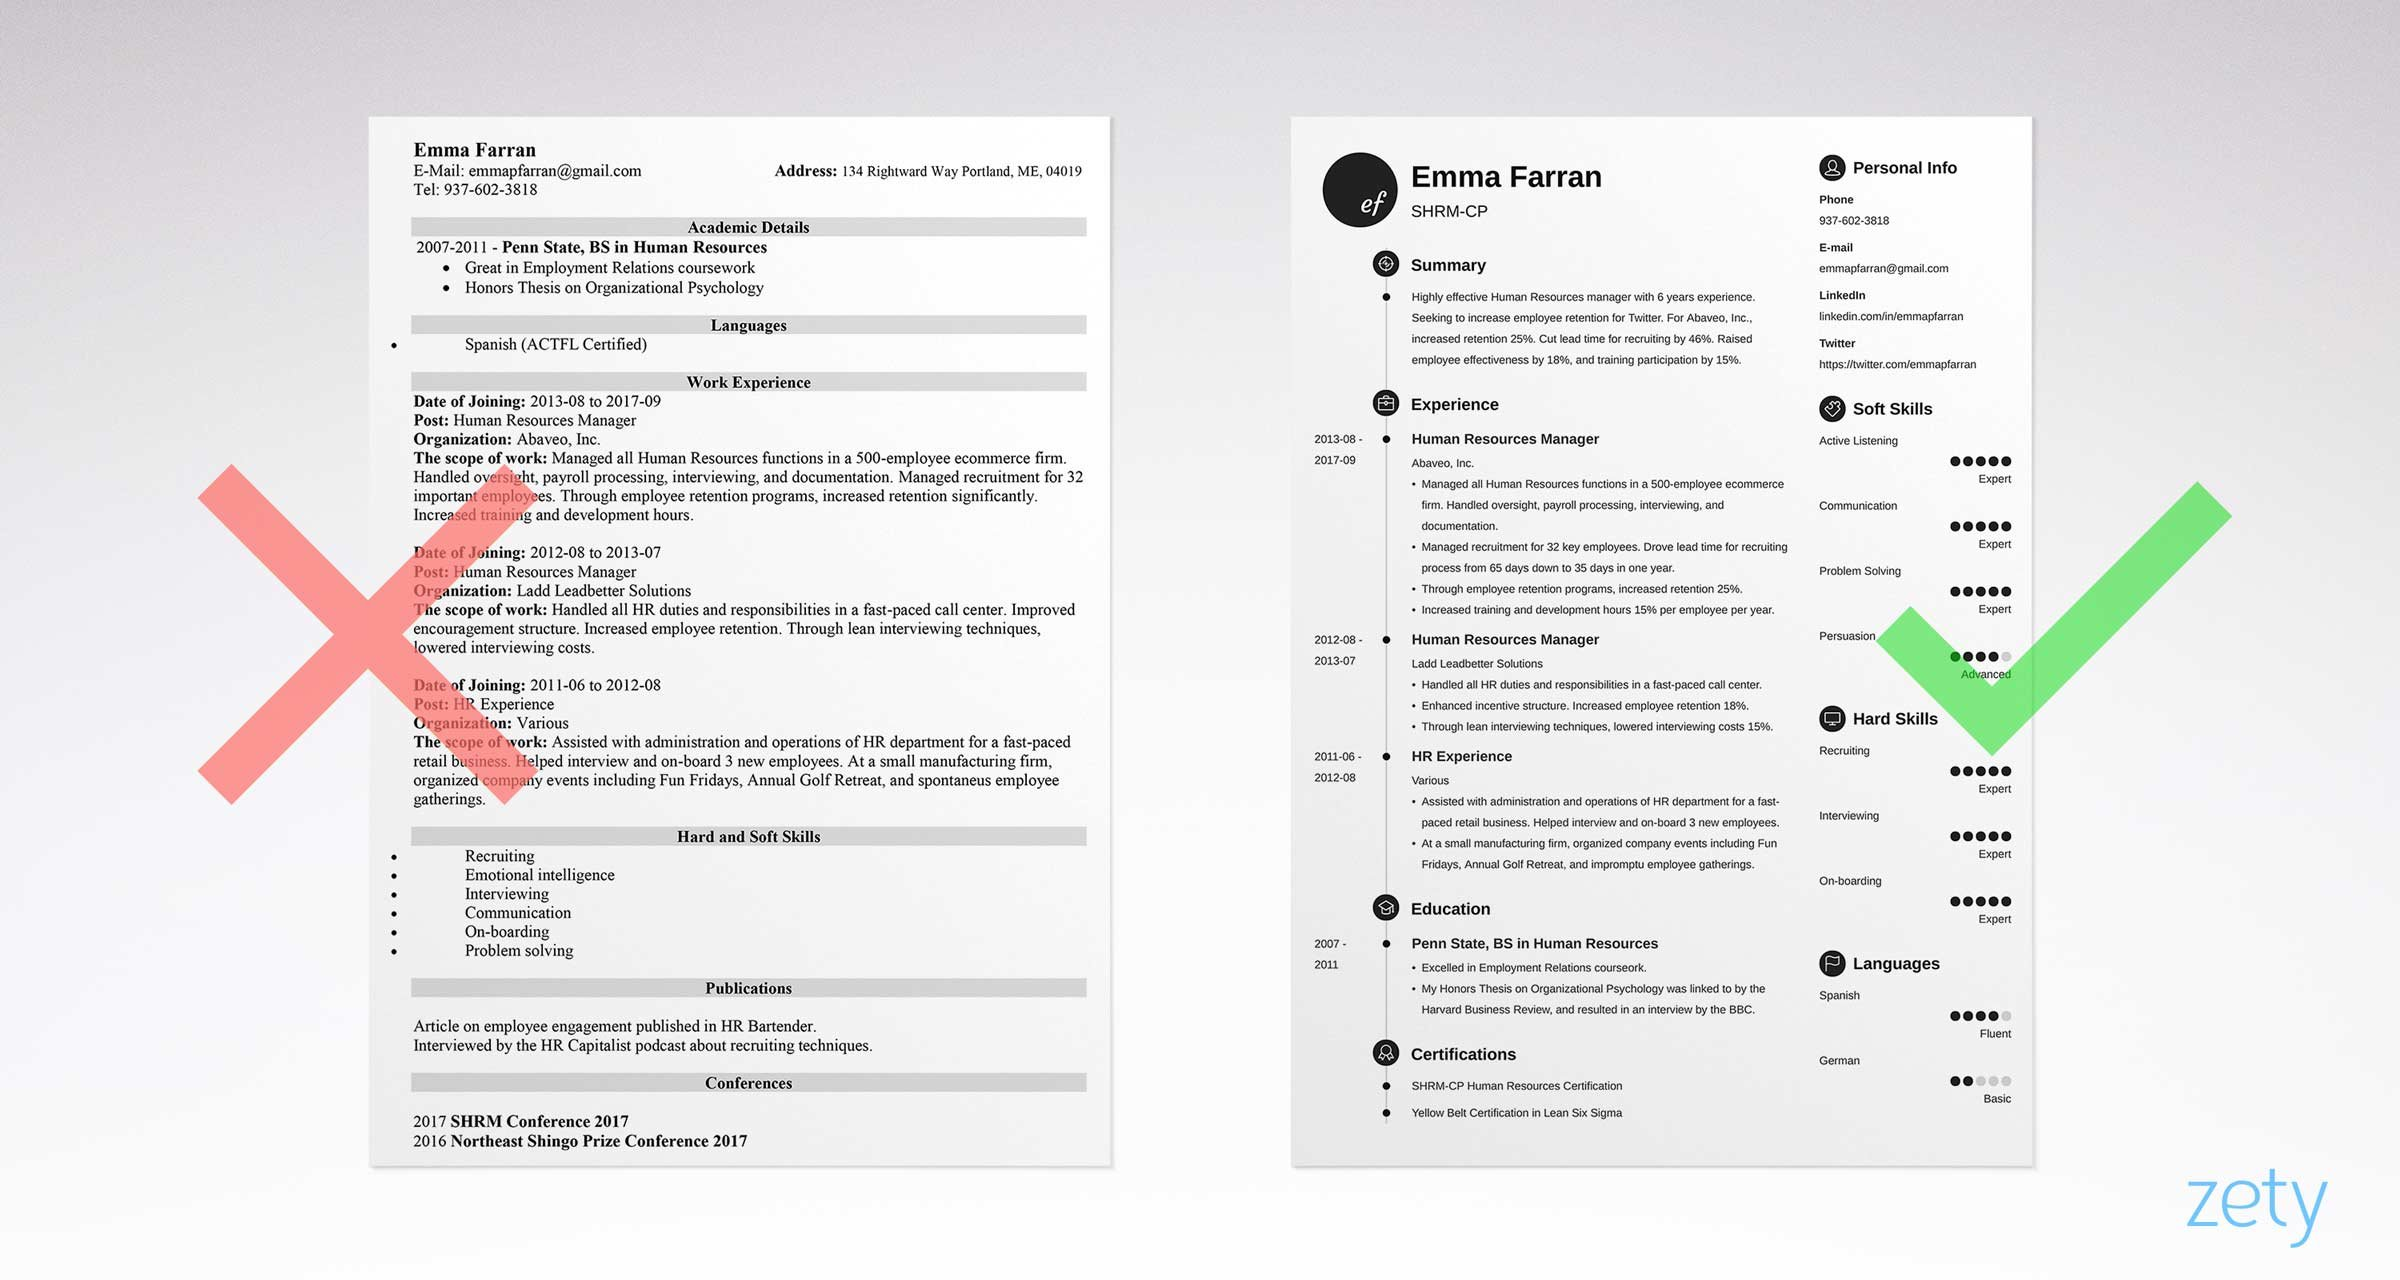 infographic resume example of visual resume improvement